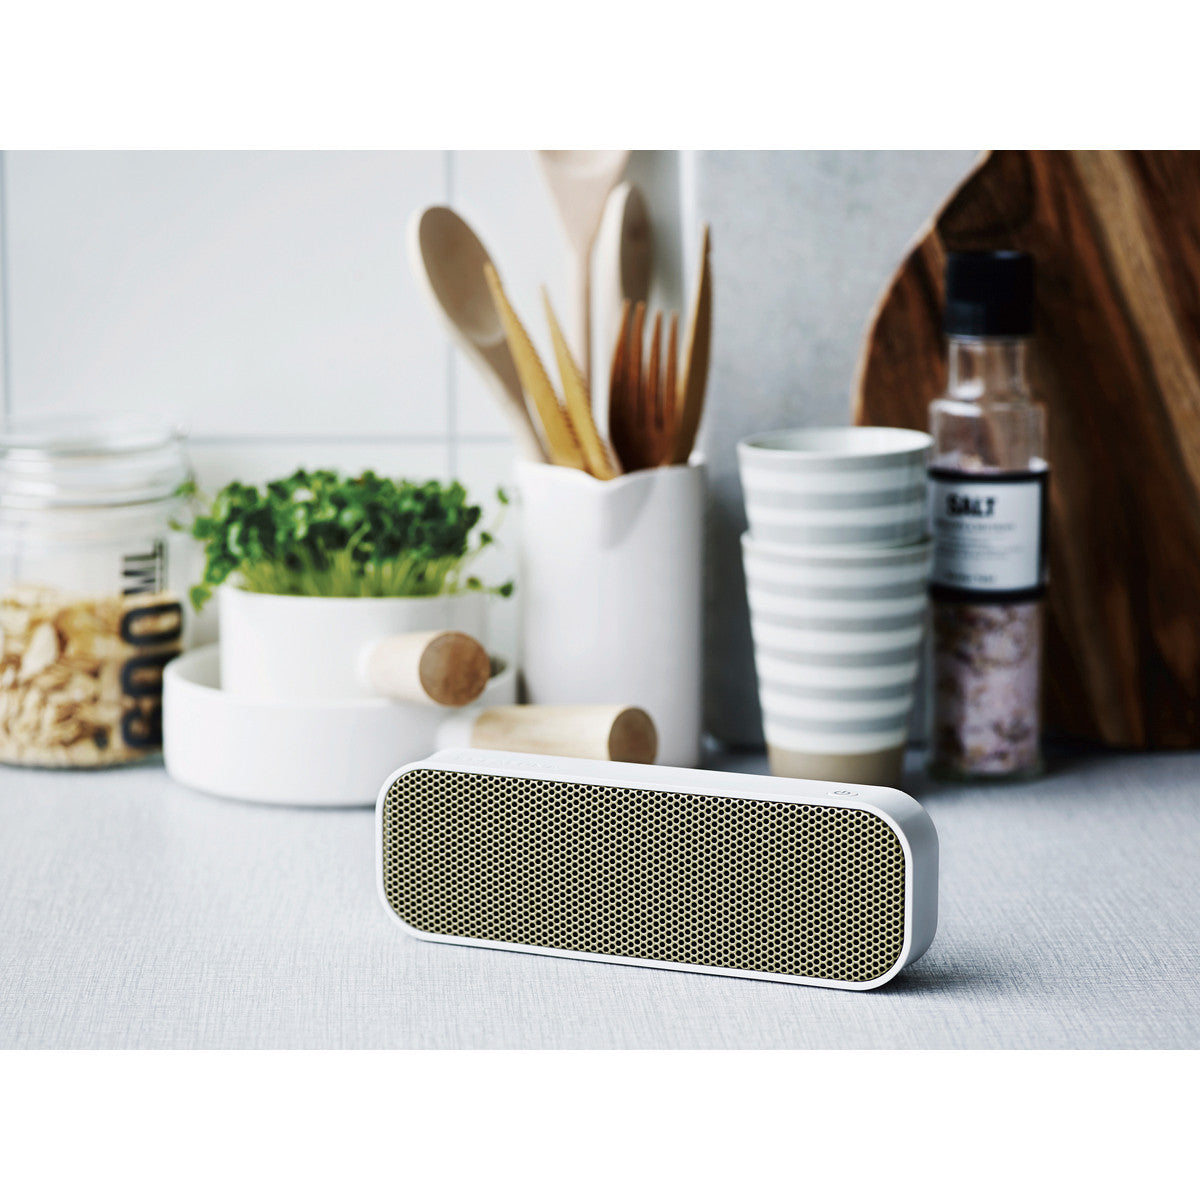 KREAFUNK Agroove Wireless Speaker